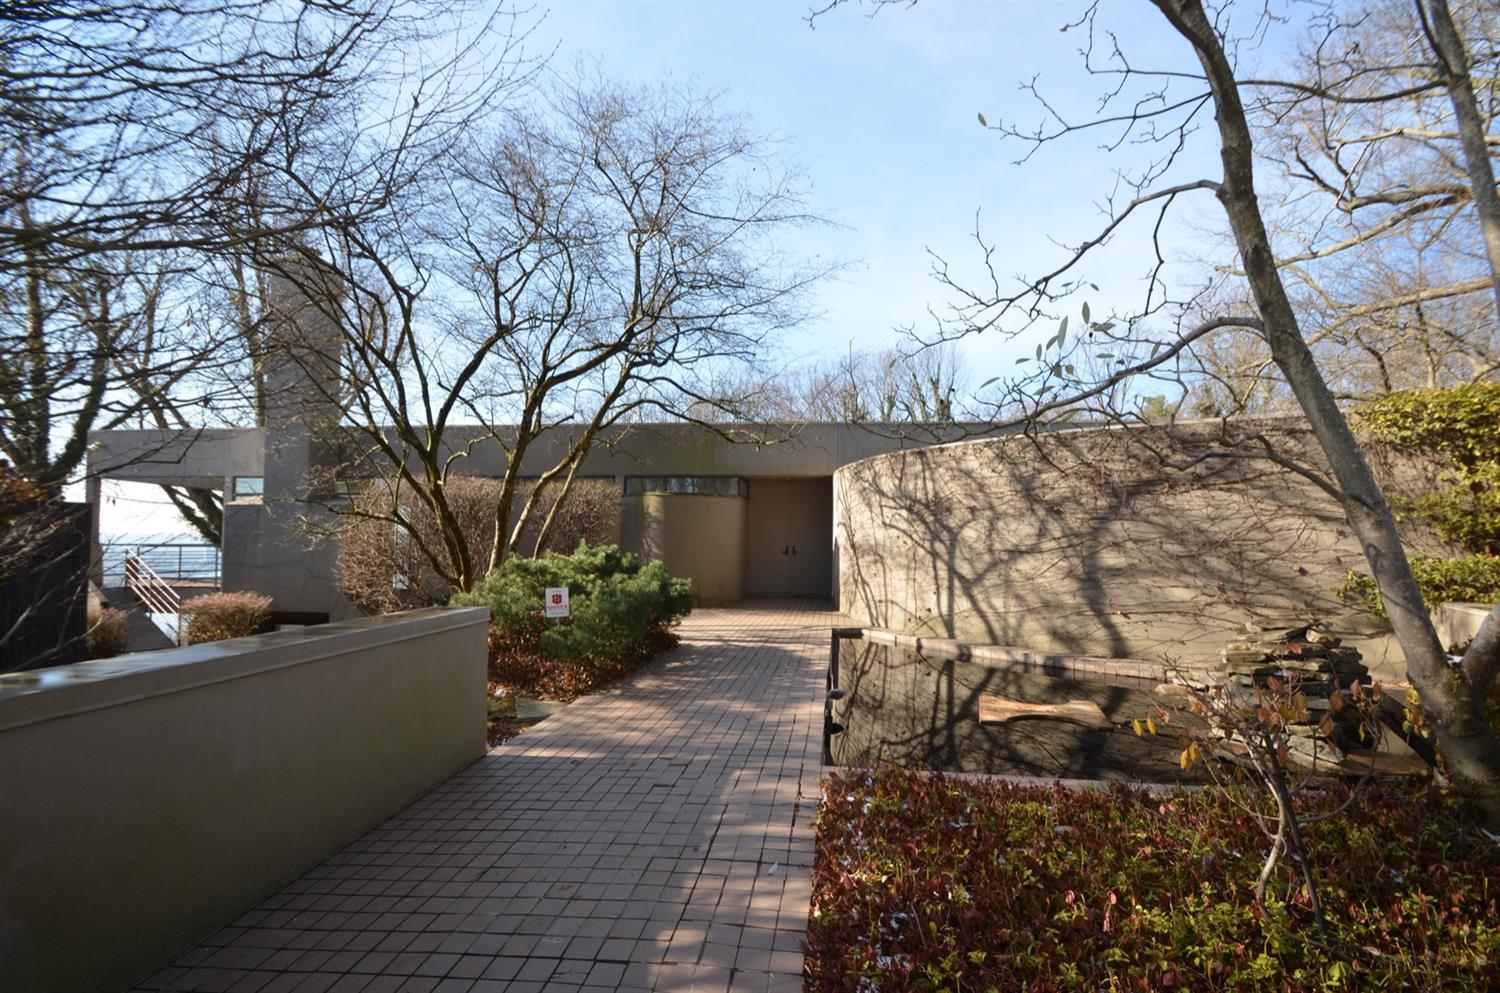 Entry approach and courtyard.